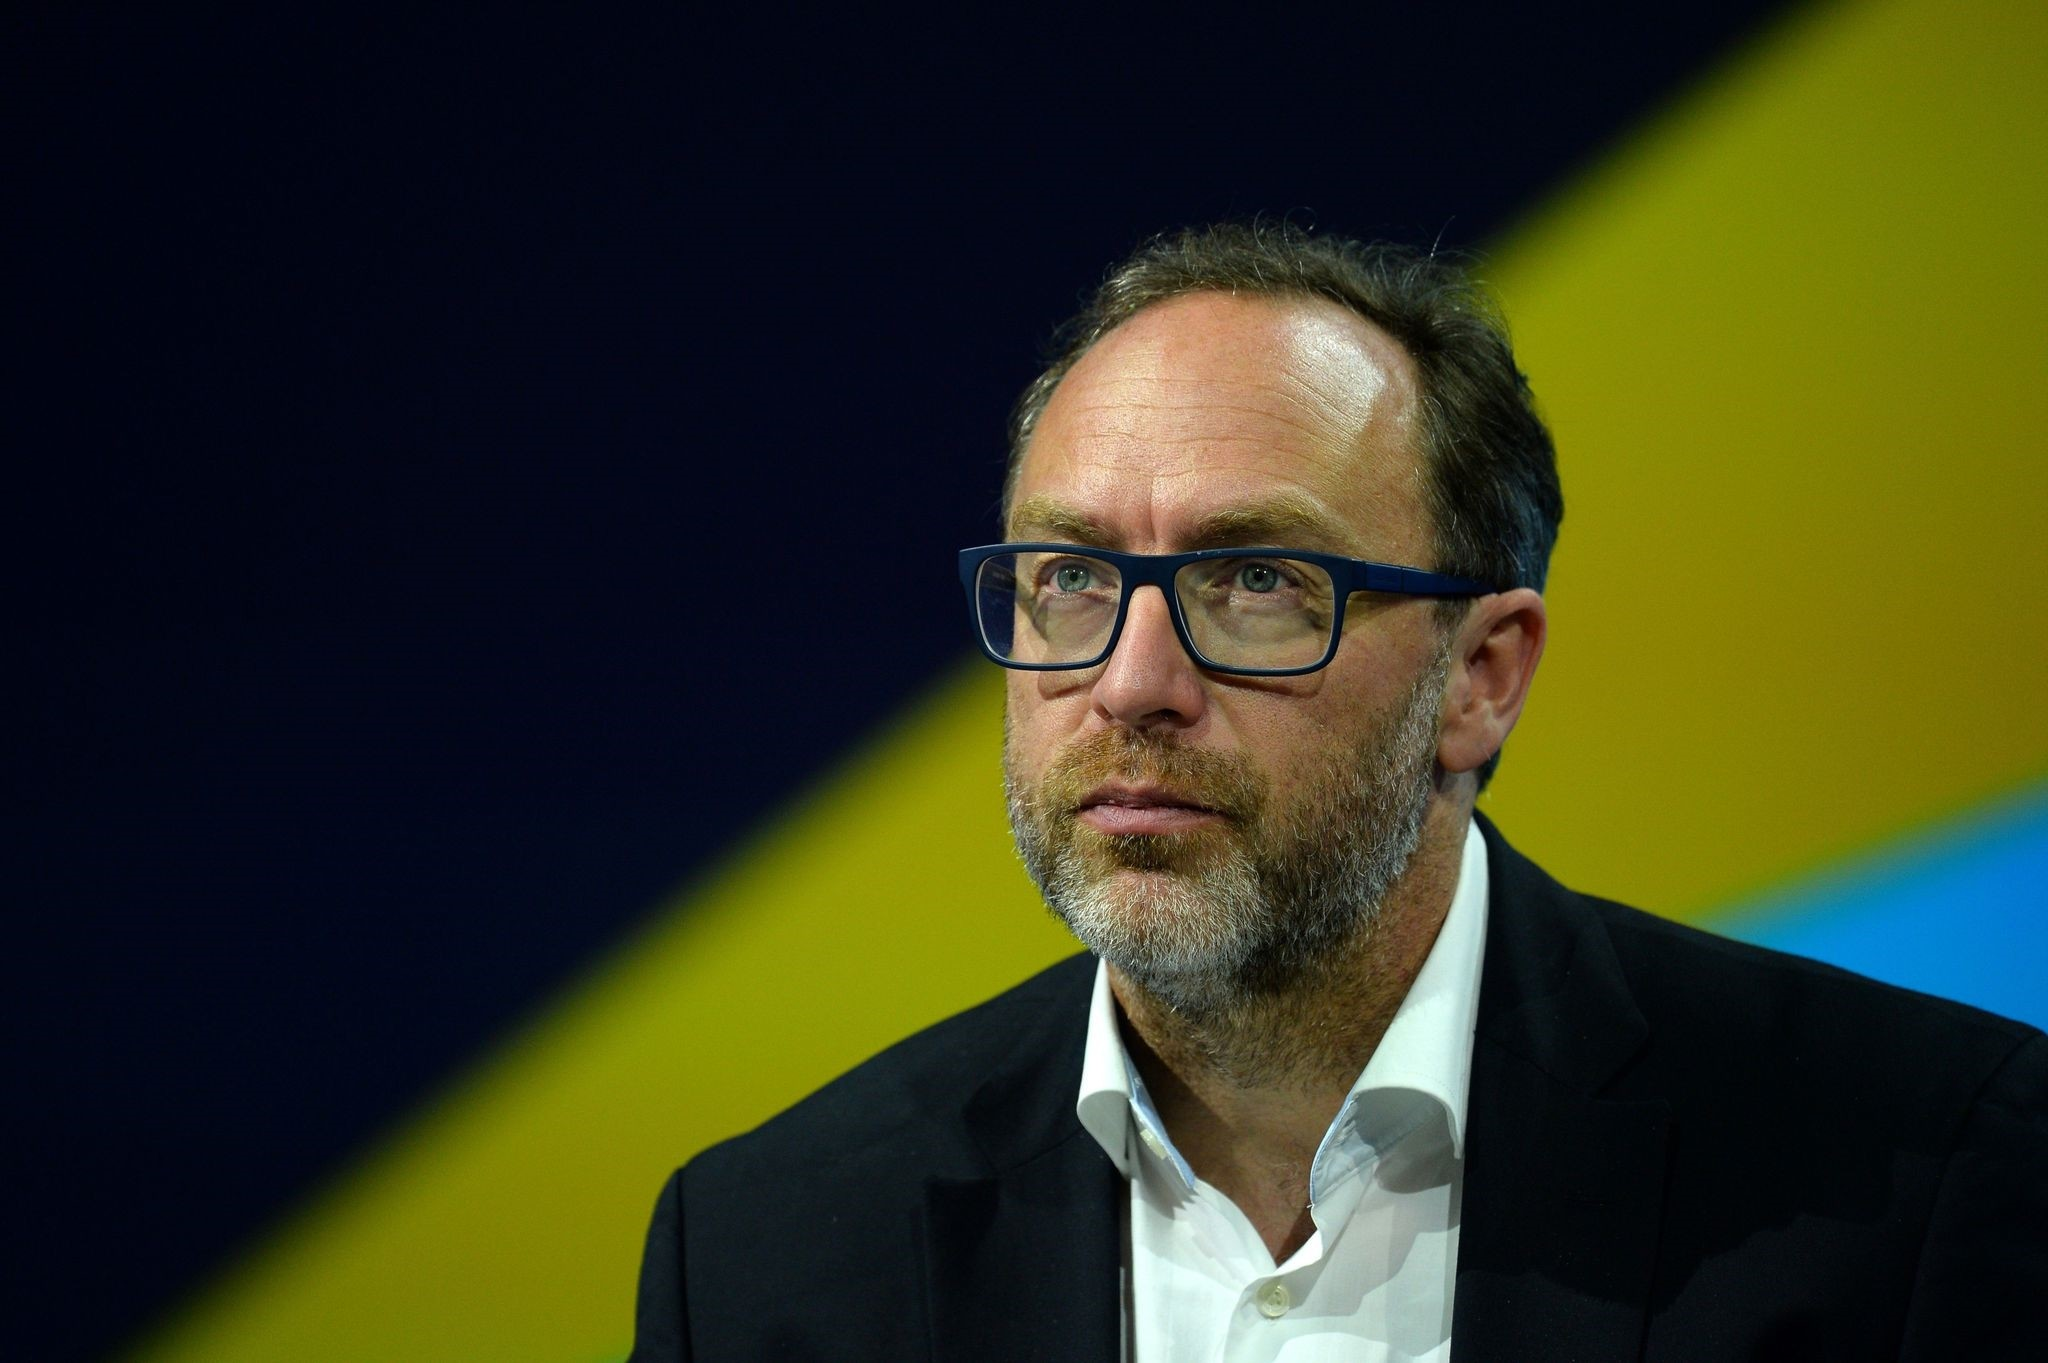 This file photo taken on June 30, 2016 shows Jimmy Wales, co-founder and promoter of the online non-profit encyclopedia Wikipedia attends the Viva Technology event in Paris. (AFP Photo)